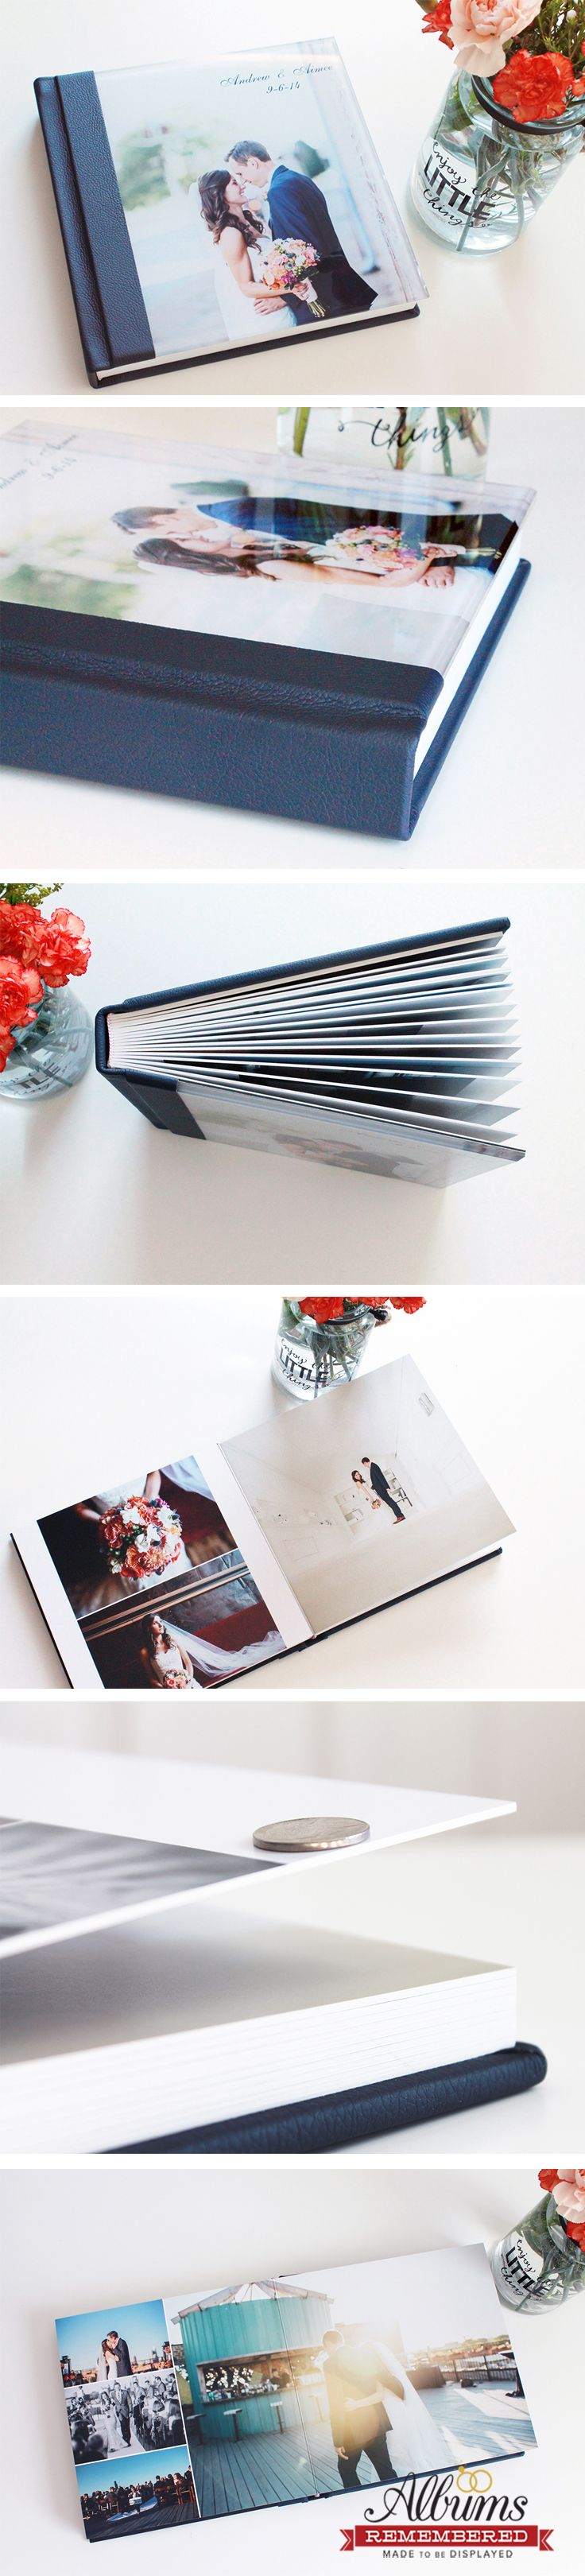 Professional wedding photo albums directly to the public at an affordable price. With each album purchasing, it includes free design service with unlimited revisions, a free digital album that can be shared with your family and friends.